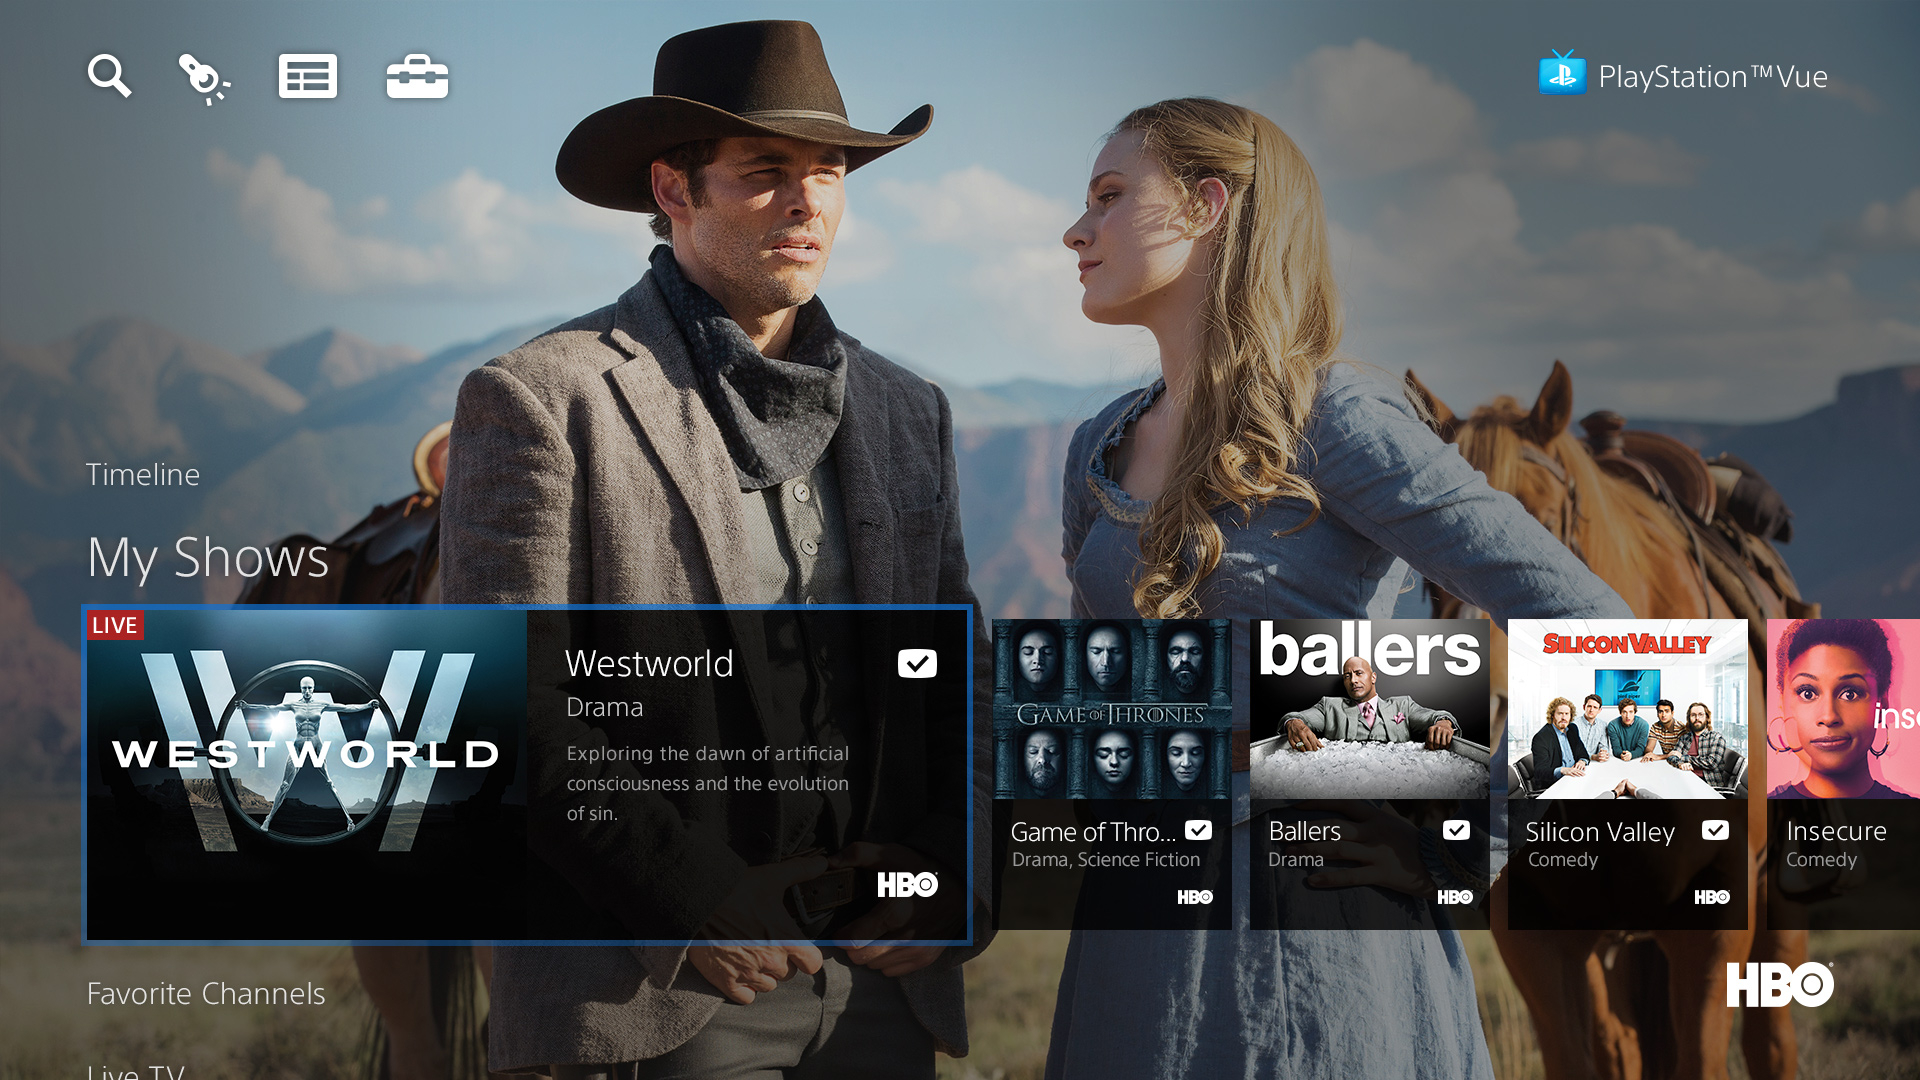 Sony raises PlayStation Vue prices by $5 a month across all